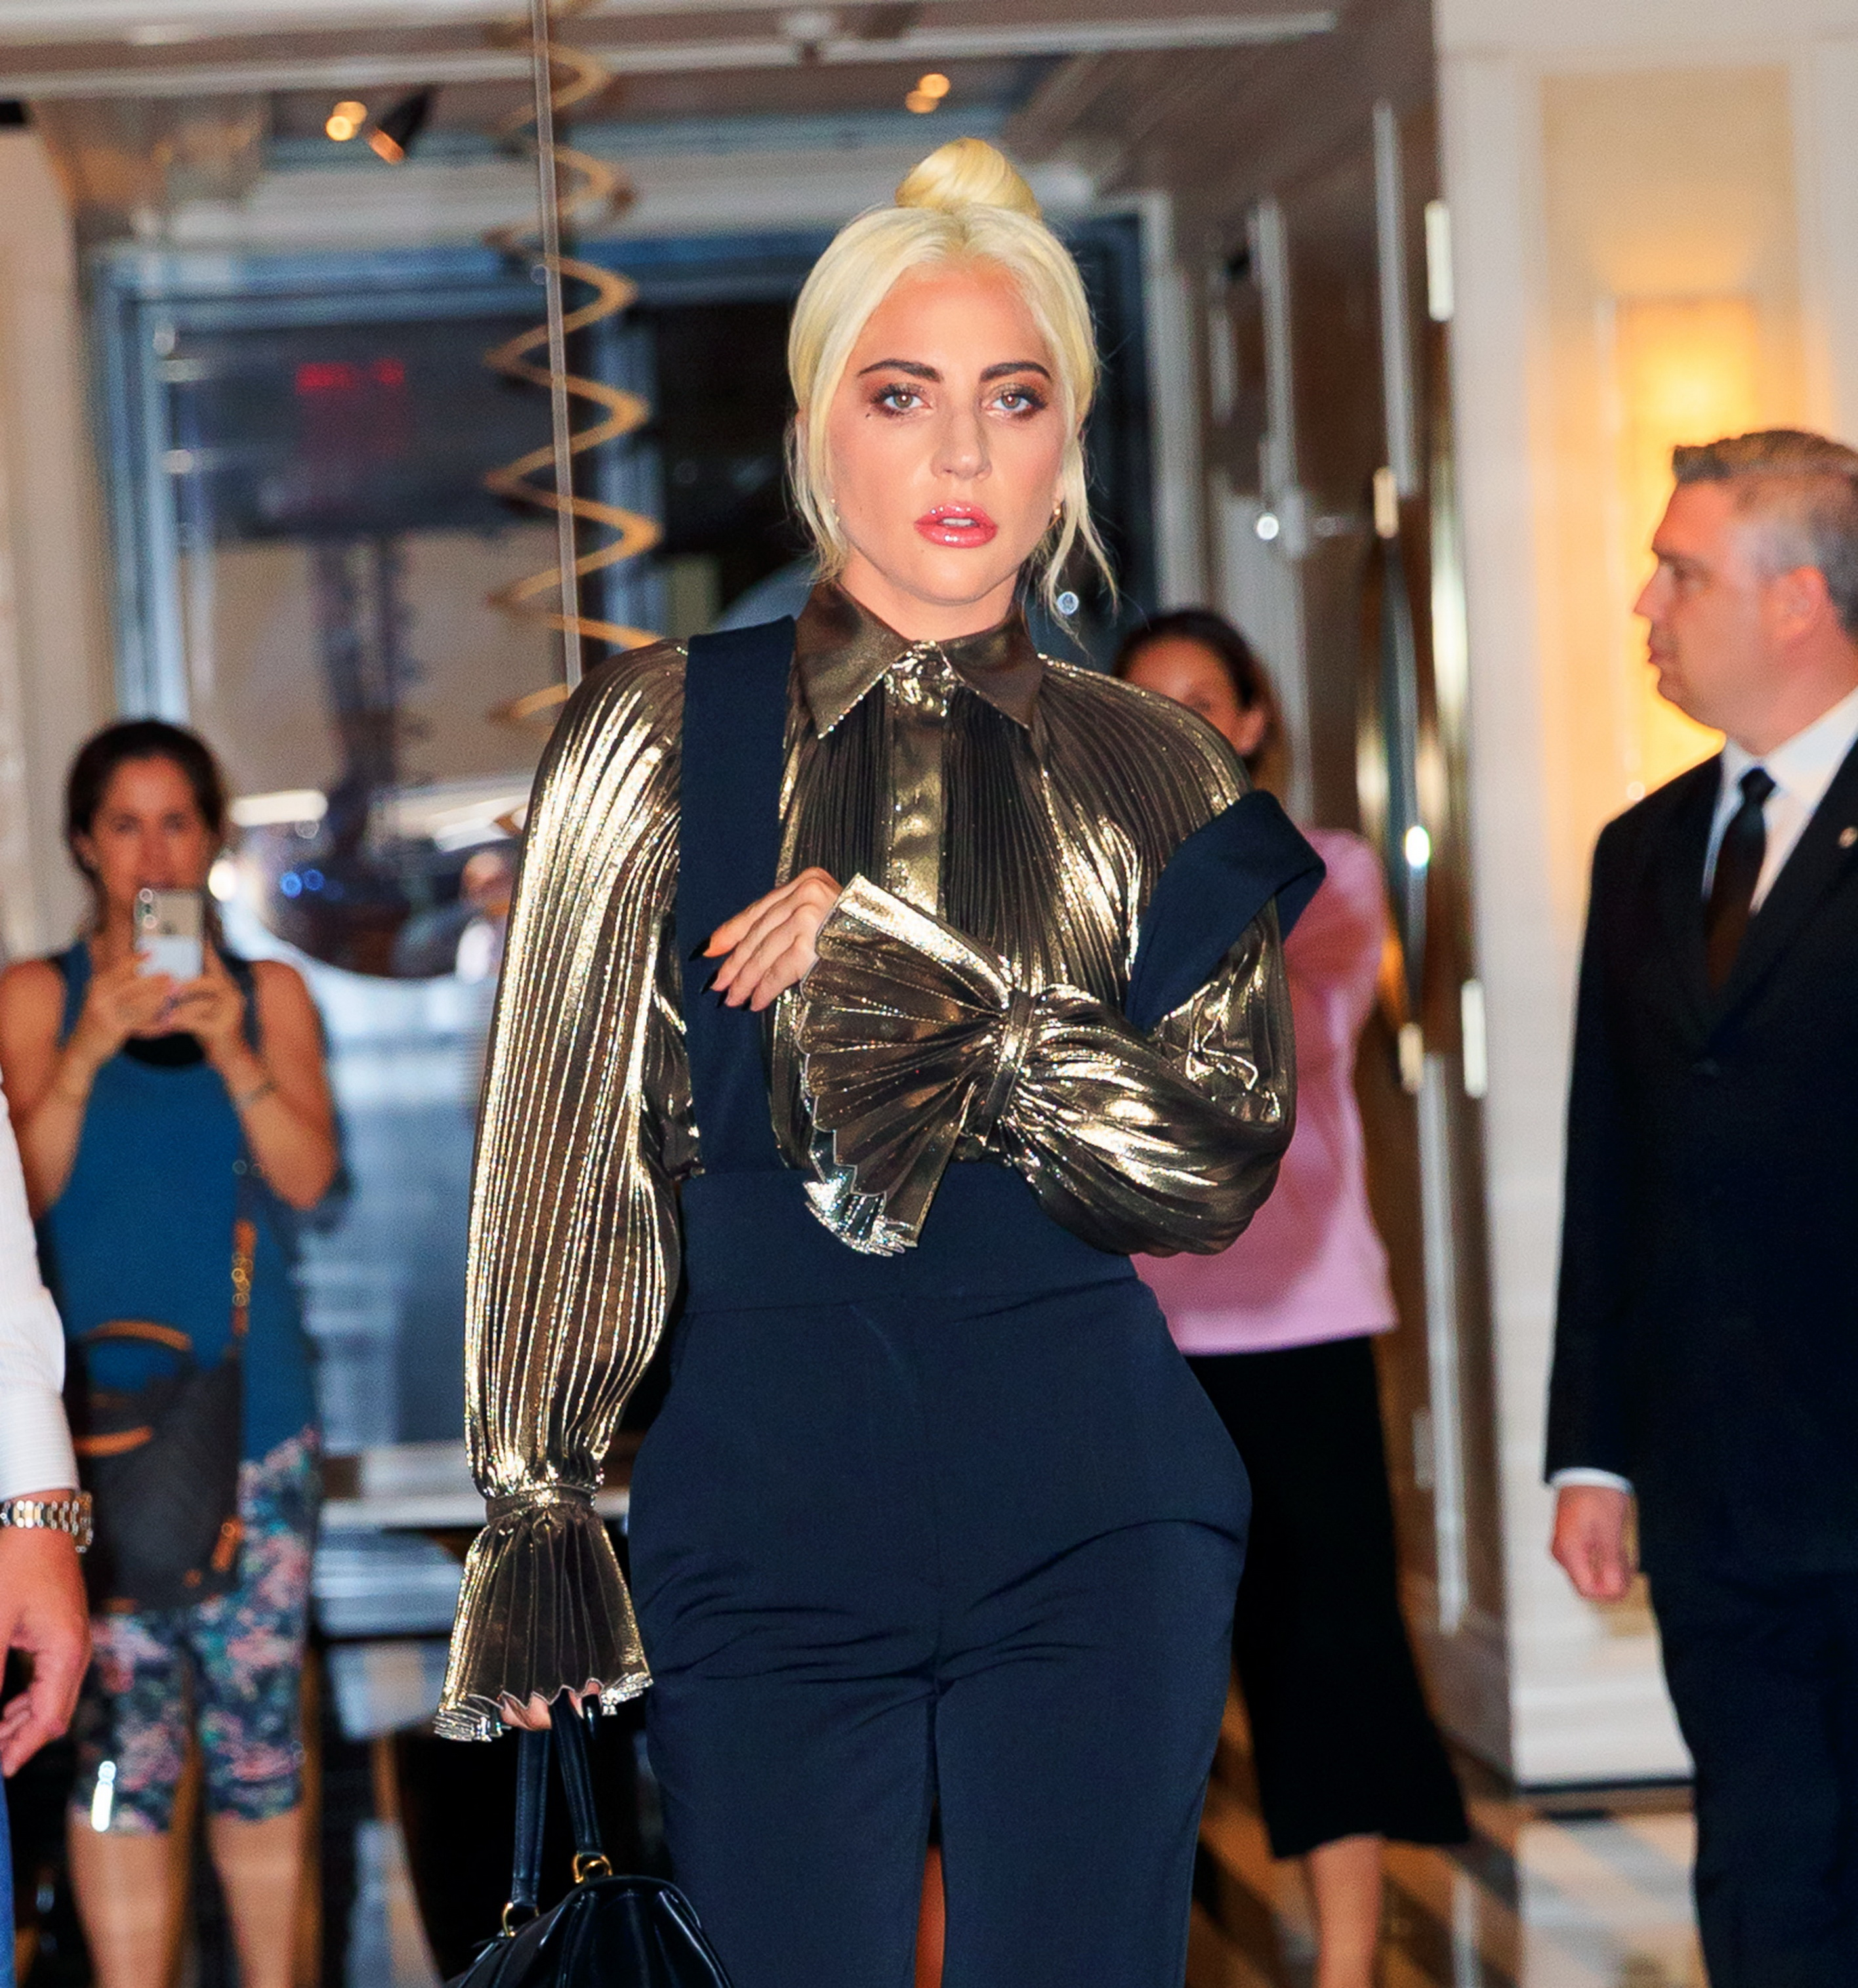 """A songwriter says Lady Gaga's """"Shallow"""" is a copycat. It's a huge reach."""